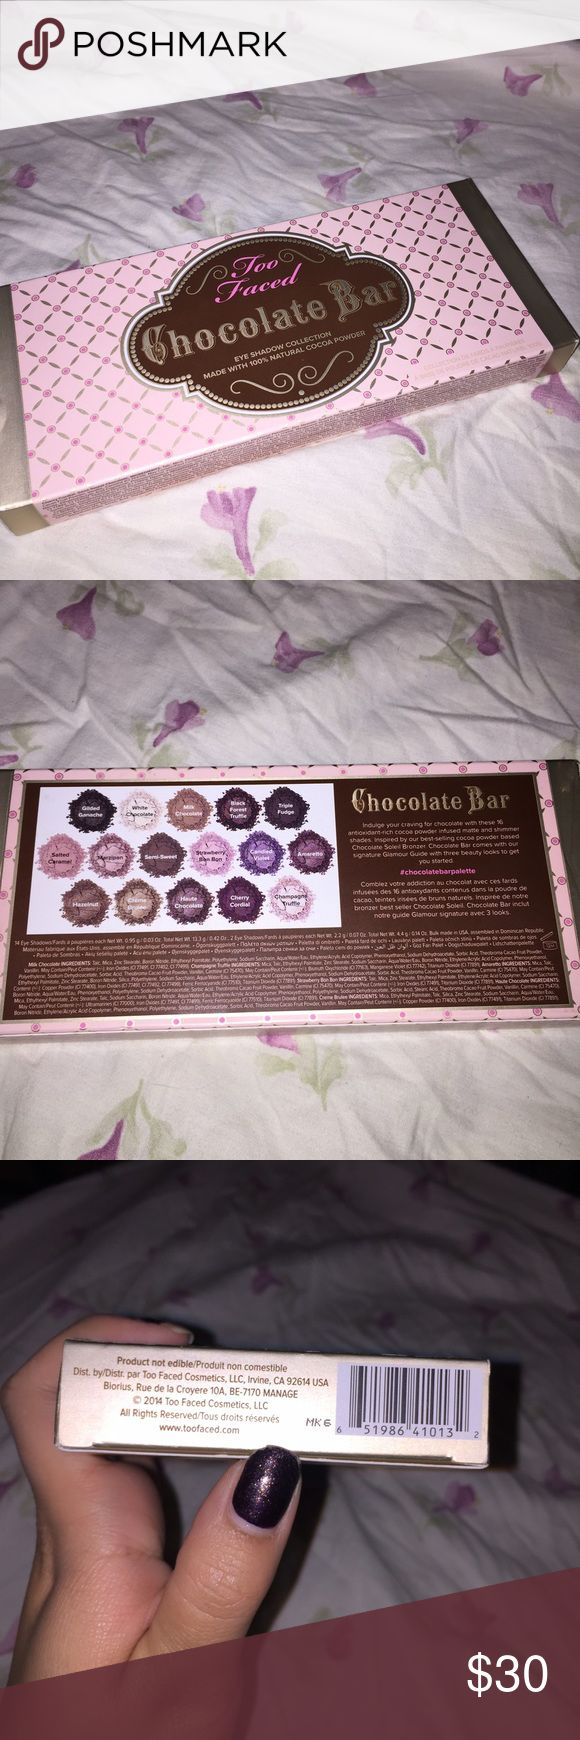 Too Faced Chocolate Bar Too Faced Chocolate Bar. 100% authentic bought from Sephora. I bought this with my nonrefundable Sephora Christmas coupon. Just trying to get what I paid for. Never opened but I understand there are fakes out there so if you need any additional photos let me know I'll be happy to do it. Too Faced Makeup Eyeshadow